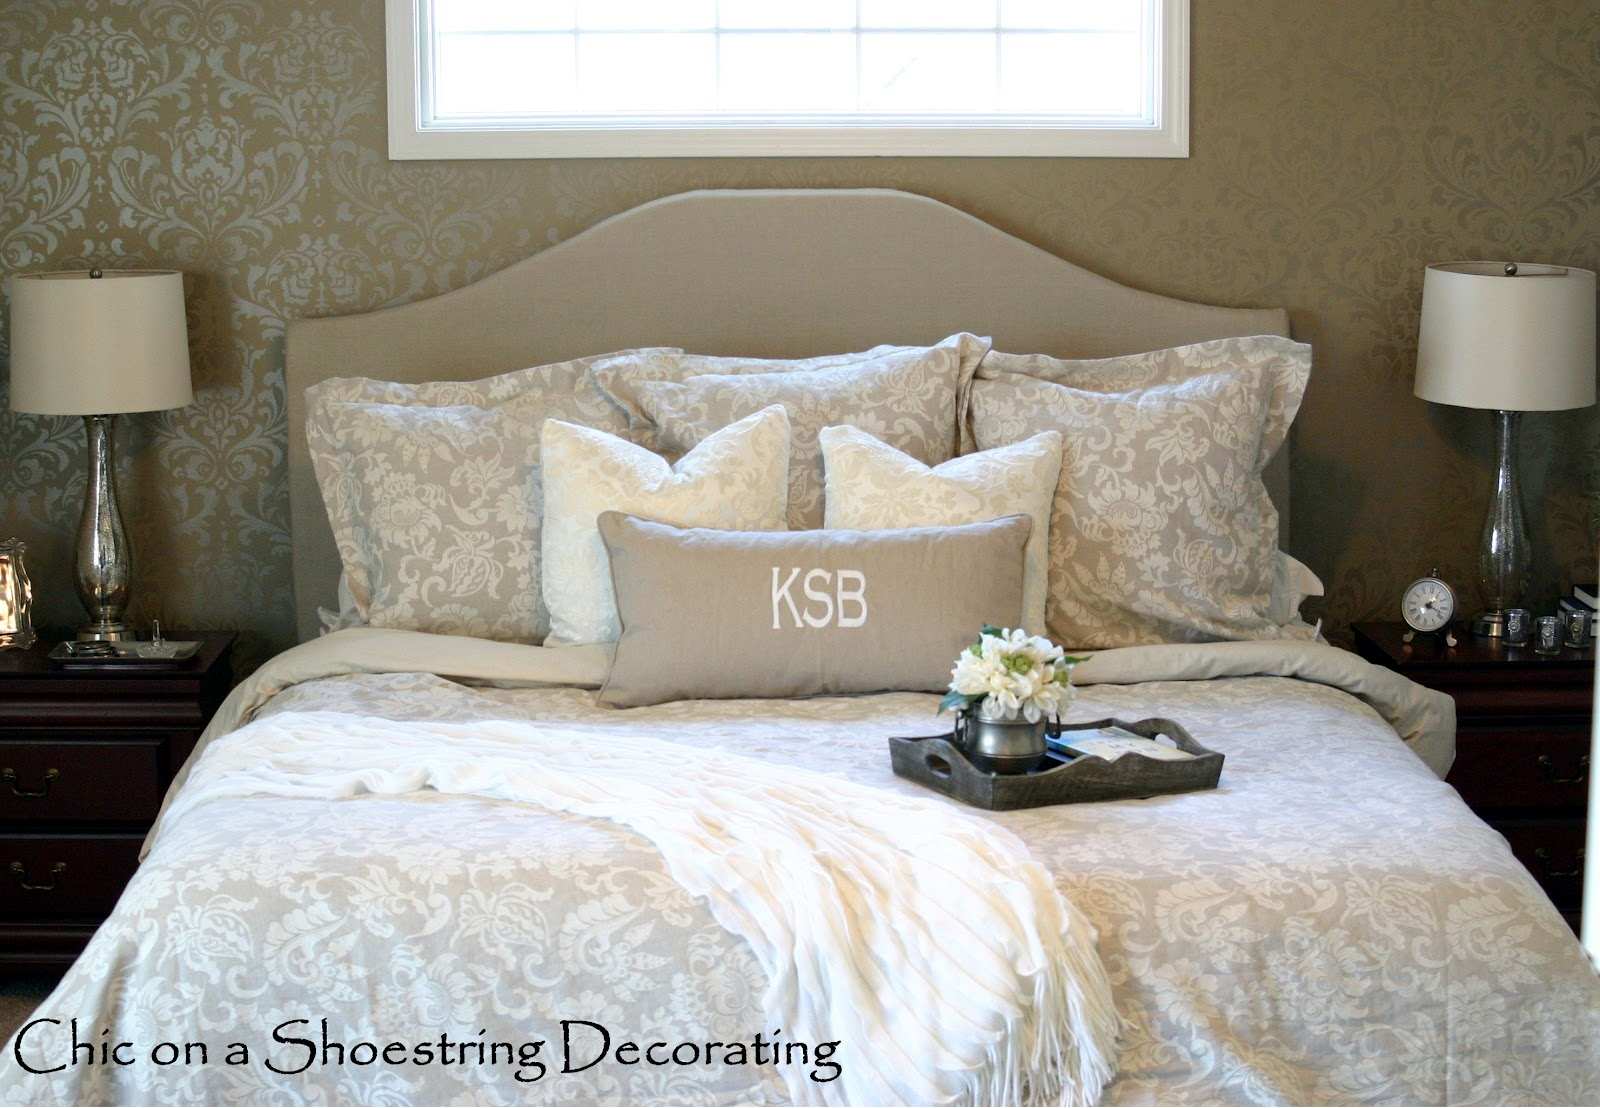 Chic on a shoestring decorating neutral master bedroom reveal for Master bedroom bedding ideas